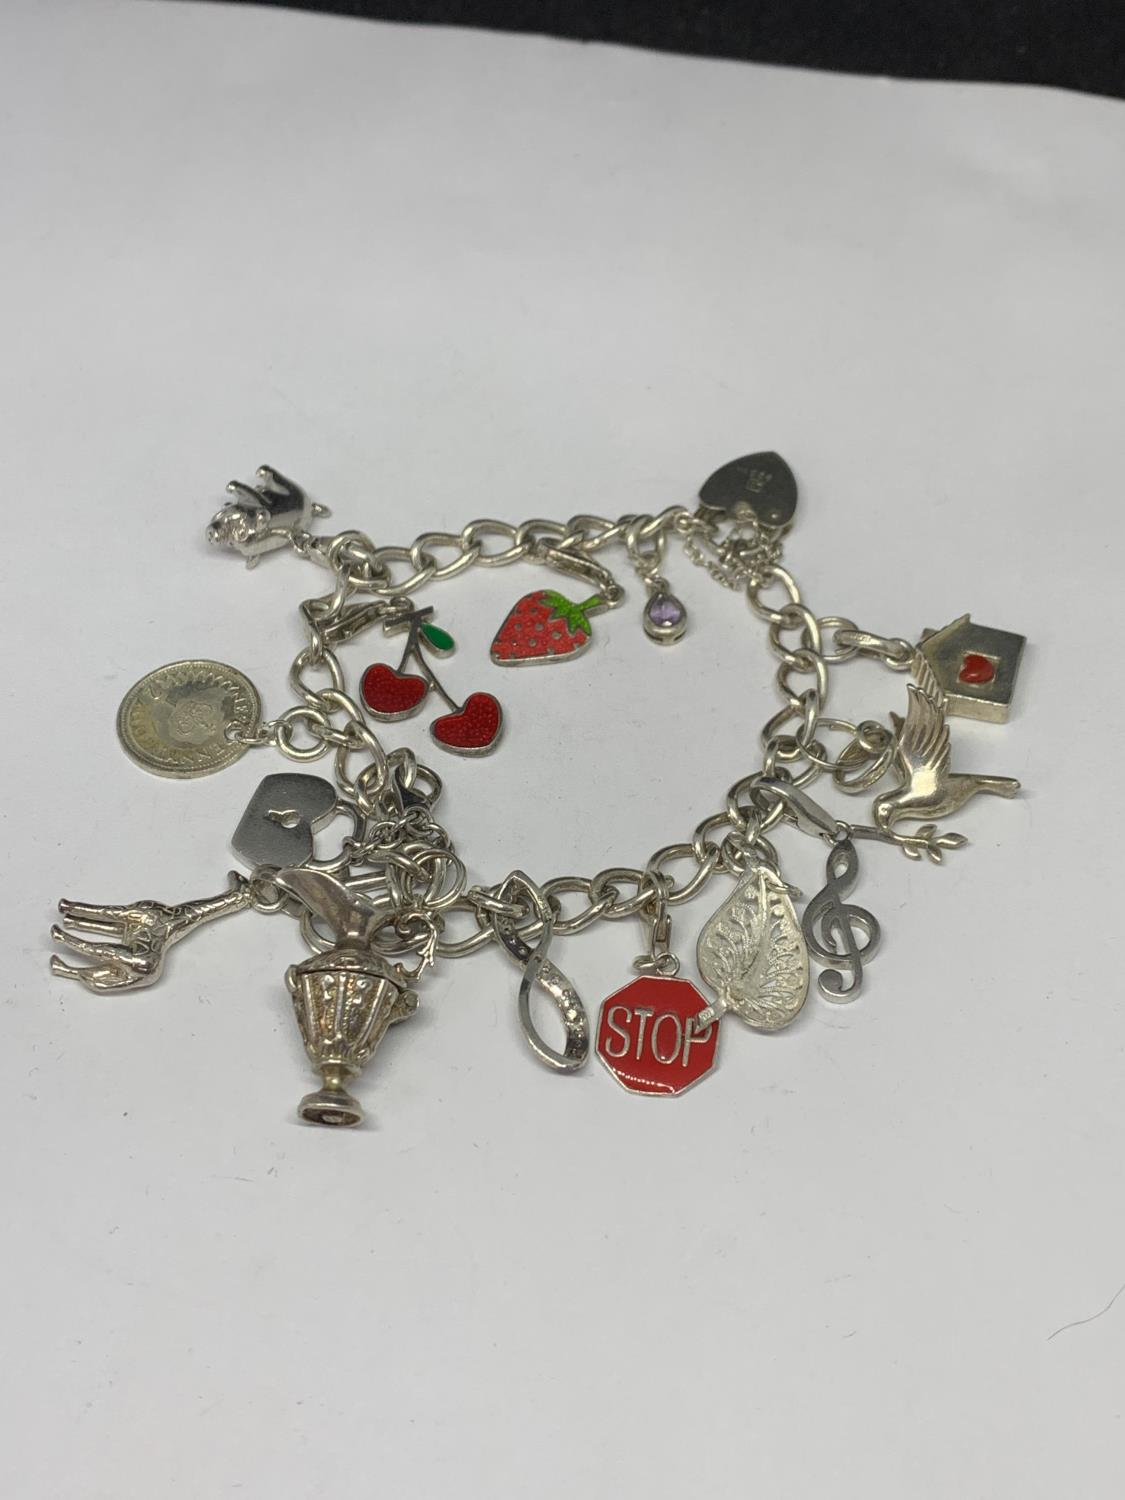 A HEAVY SILVER CHARM BRACELET WITH THIRTEEN CHARMS TO INCLUDE A STRAWBERRY, CHERRIES, DOVE ETC